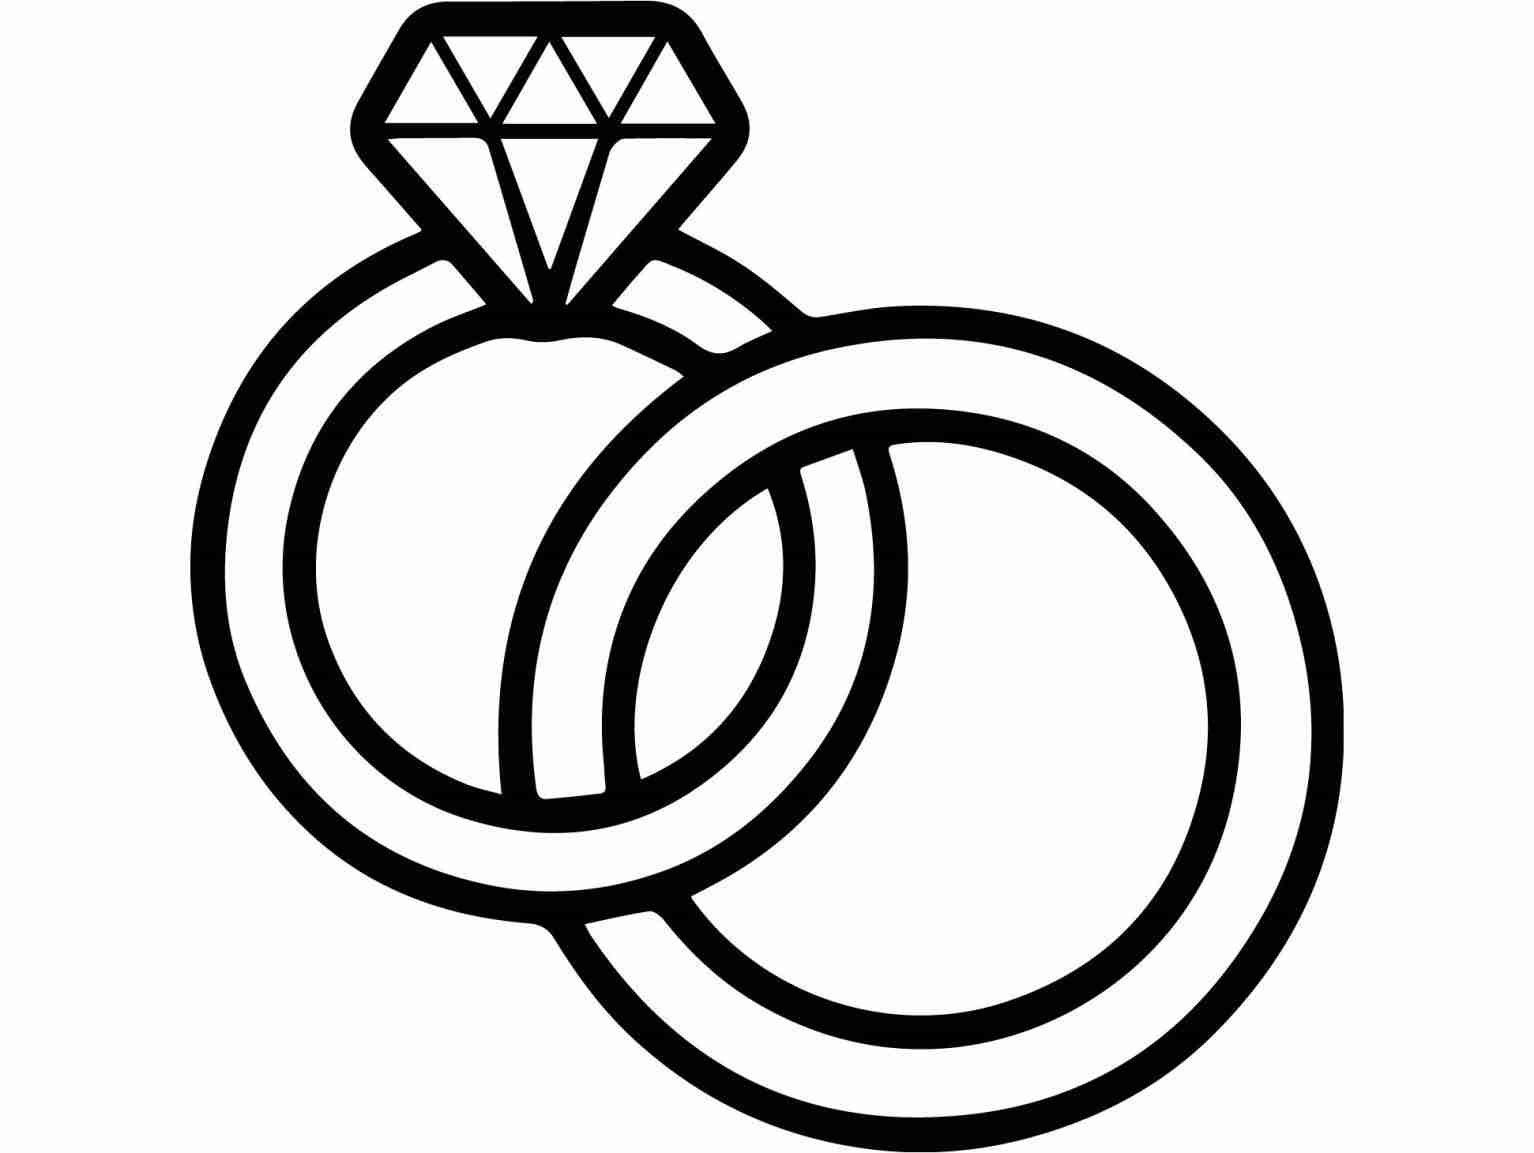 Drawing Wedding Rings Linked Together Wedding Ring Drawing Wedding Ring Clipart Blue Wedding Rings